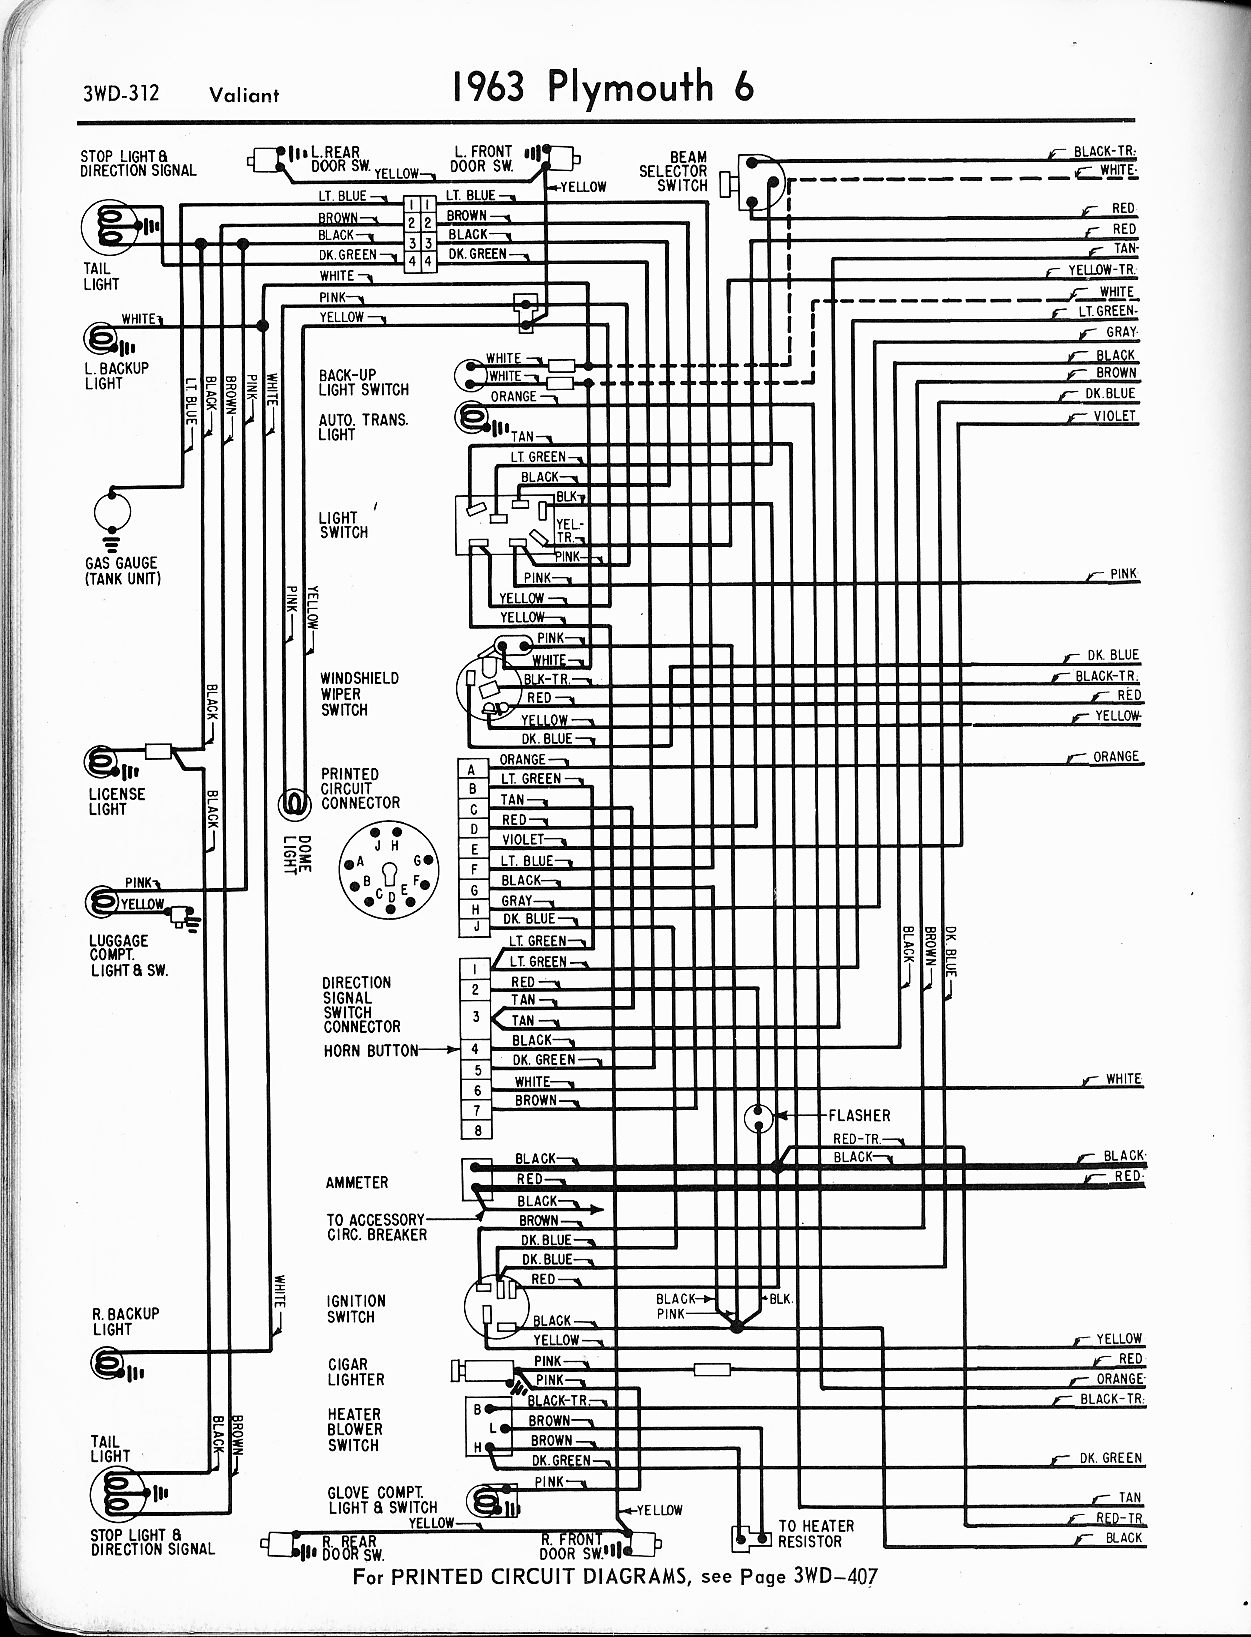 plymouth alarm wiring diagram 1956 - 1965 plymouth wiring - the old car manual project 71 plymouth gtx wiring diagram free picture #2